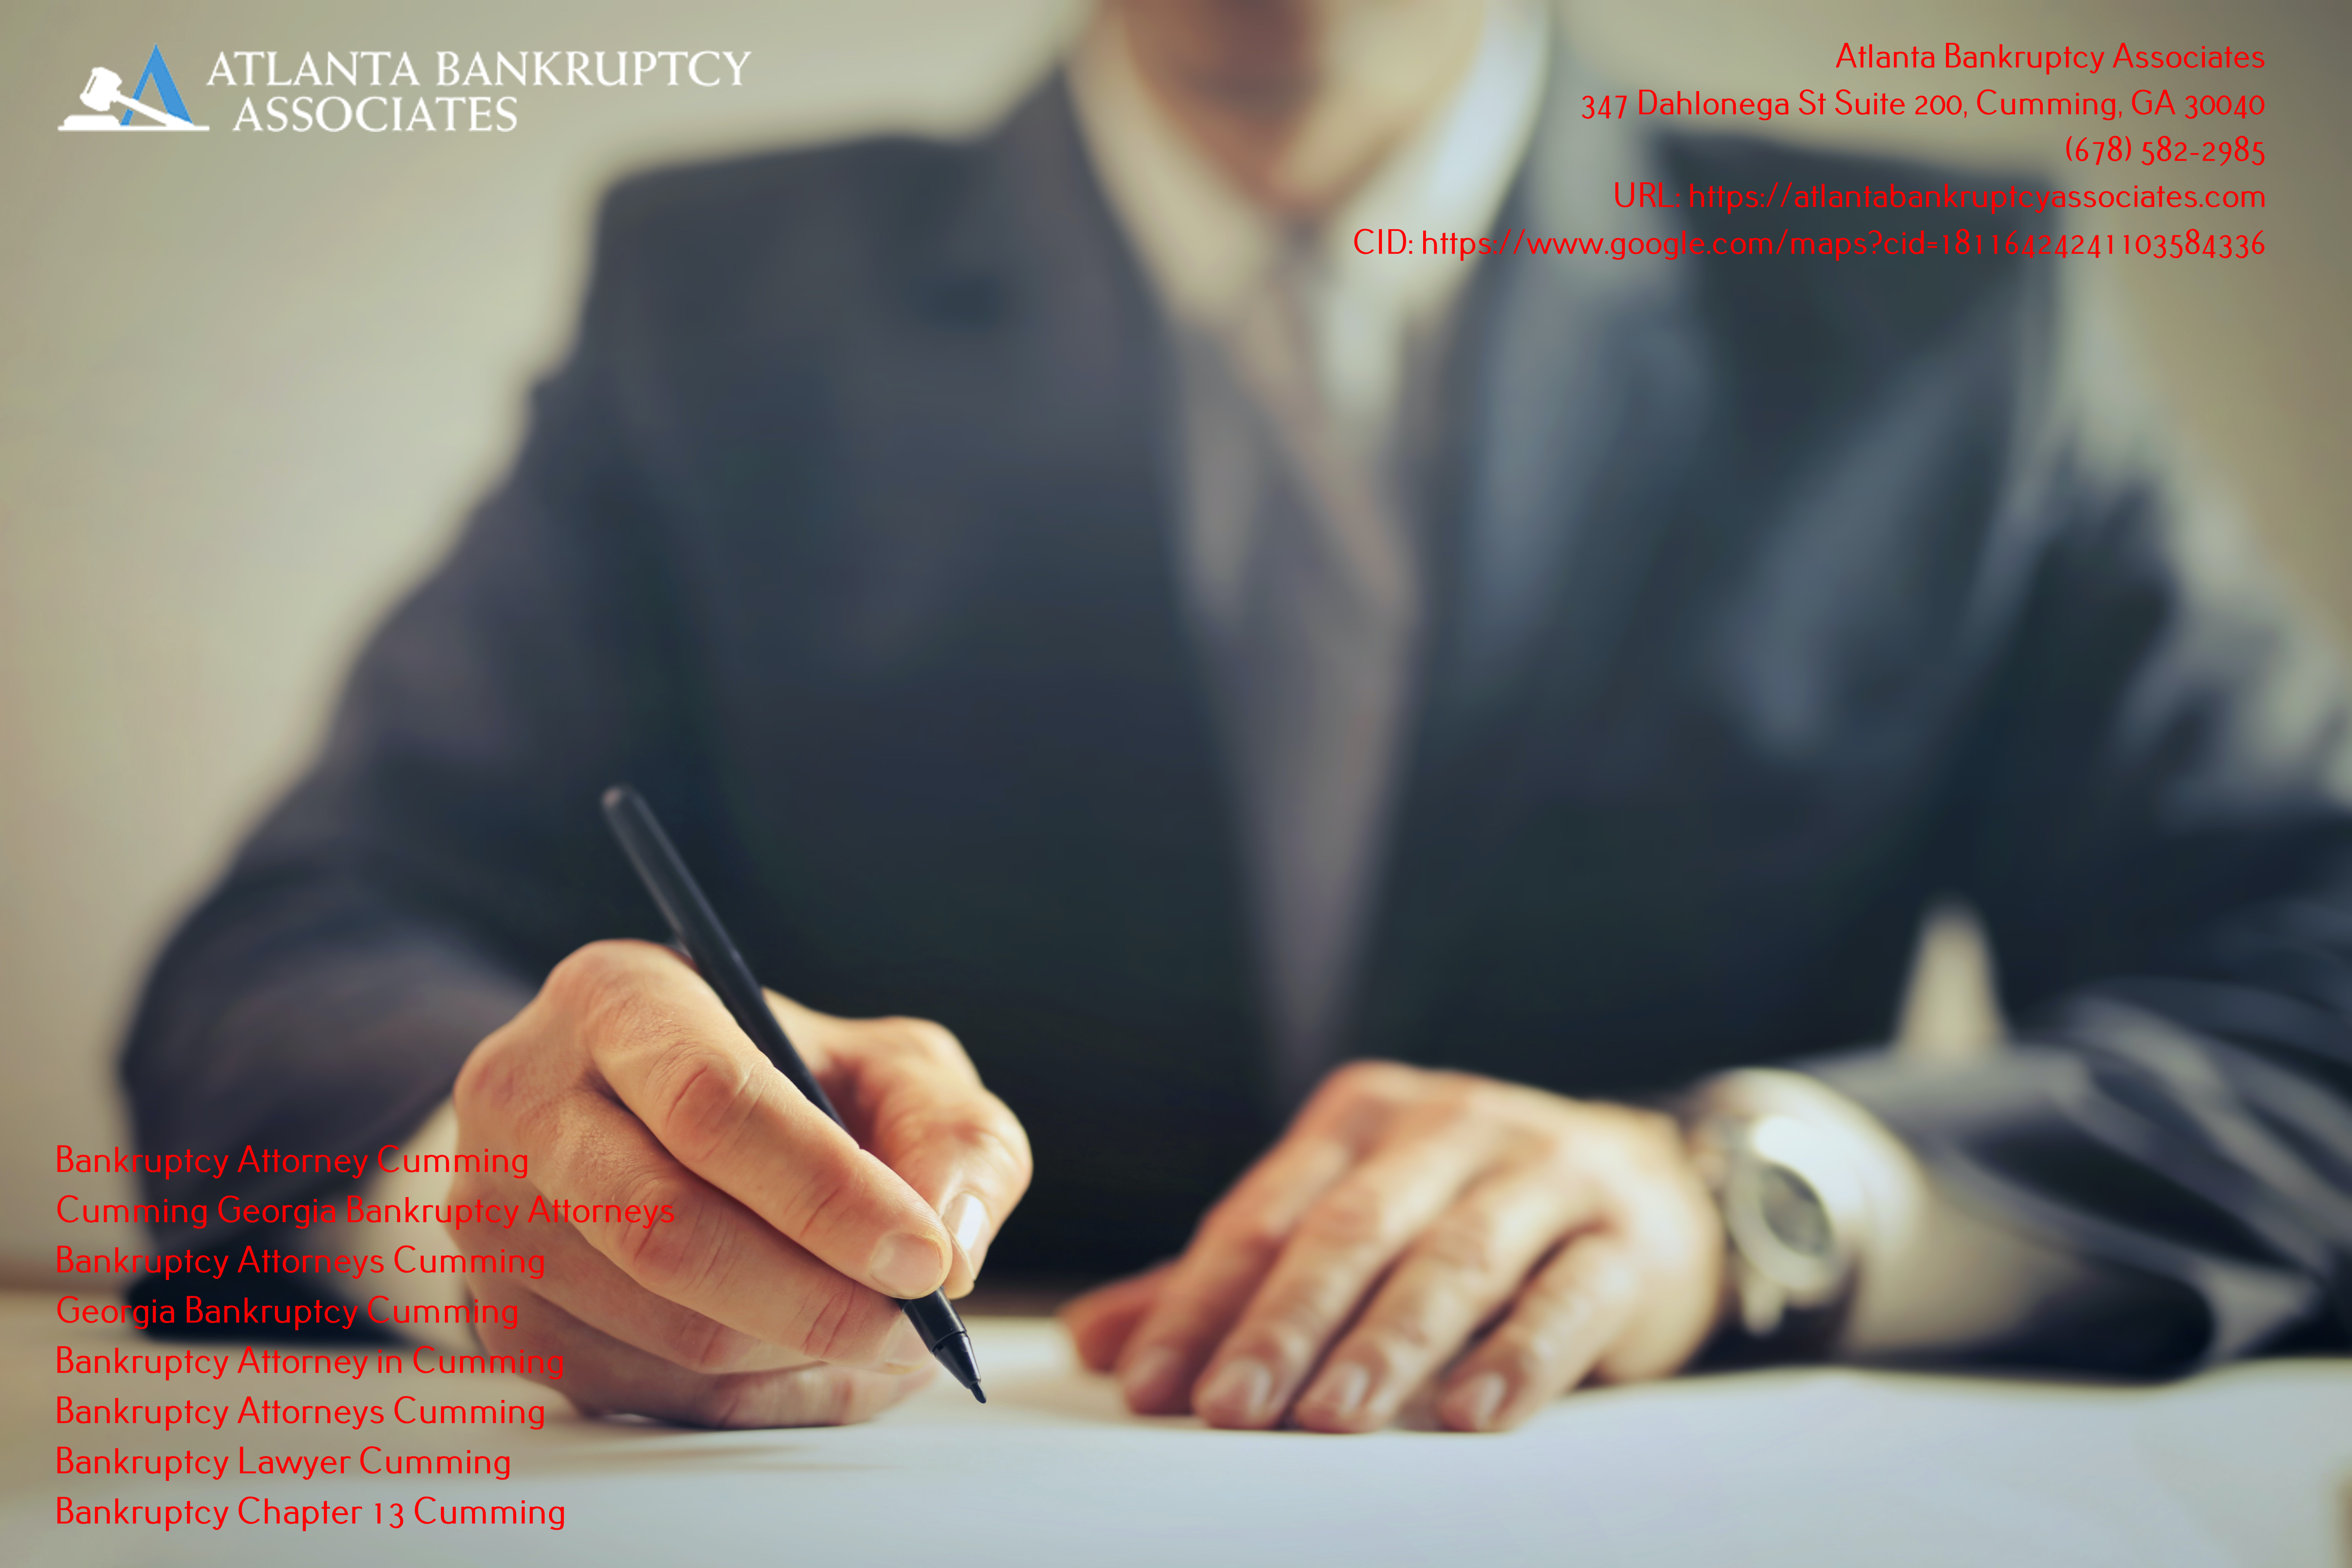 Atlanta Bankruptcy Associates is Helping People Understand the Type of Bankruptcy Right for Them